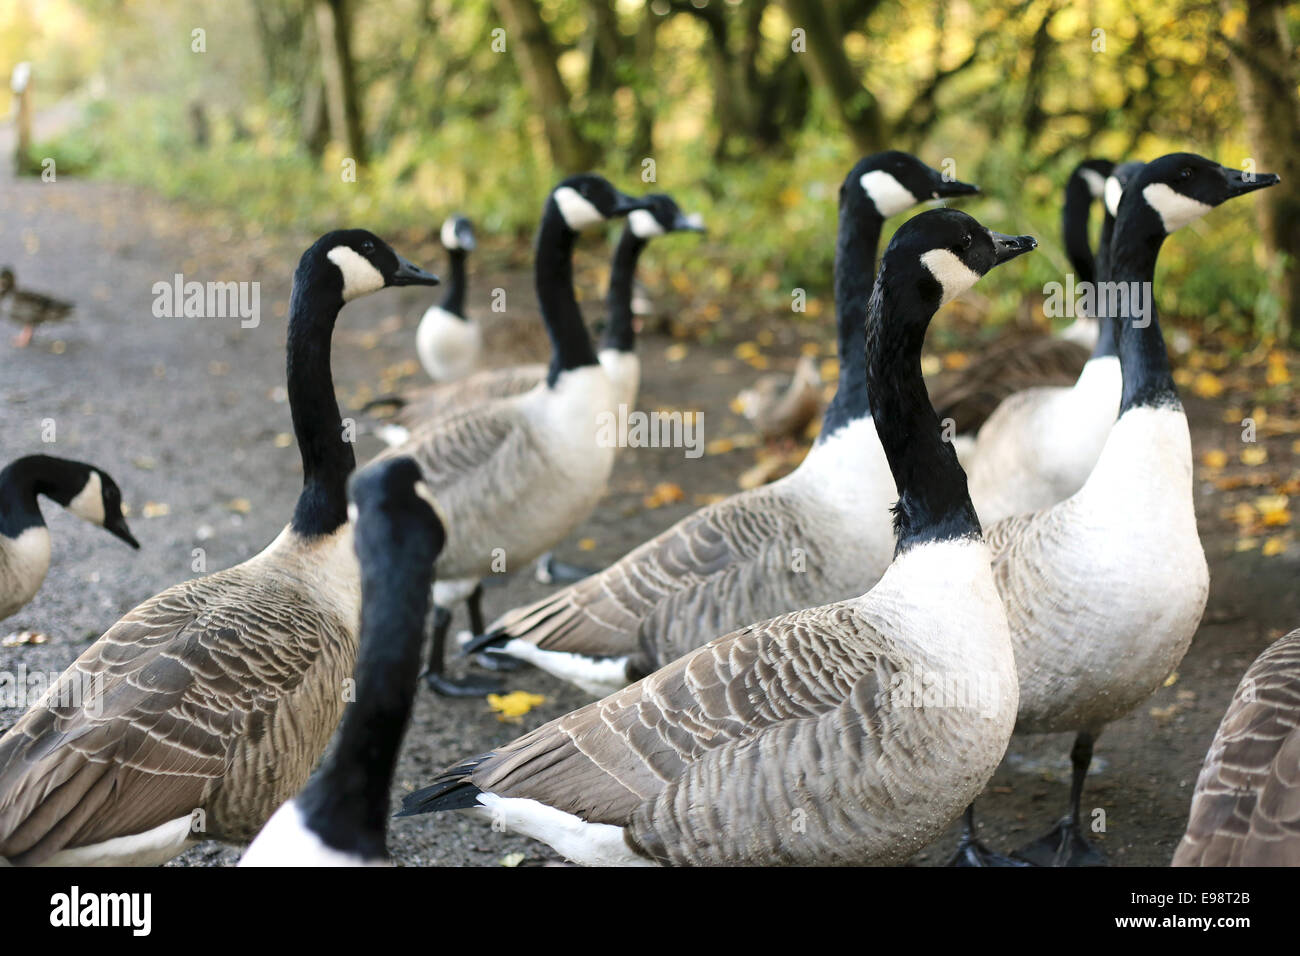 Gaggle of geese - Stock Image